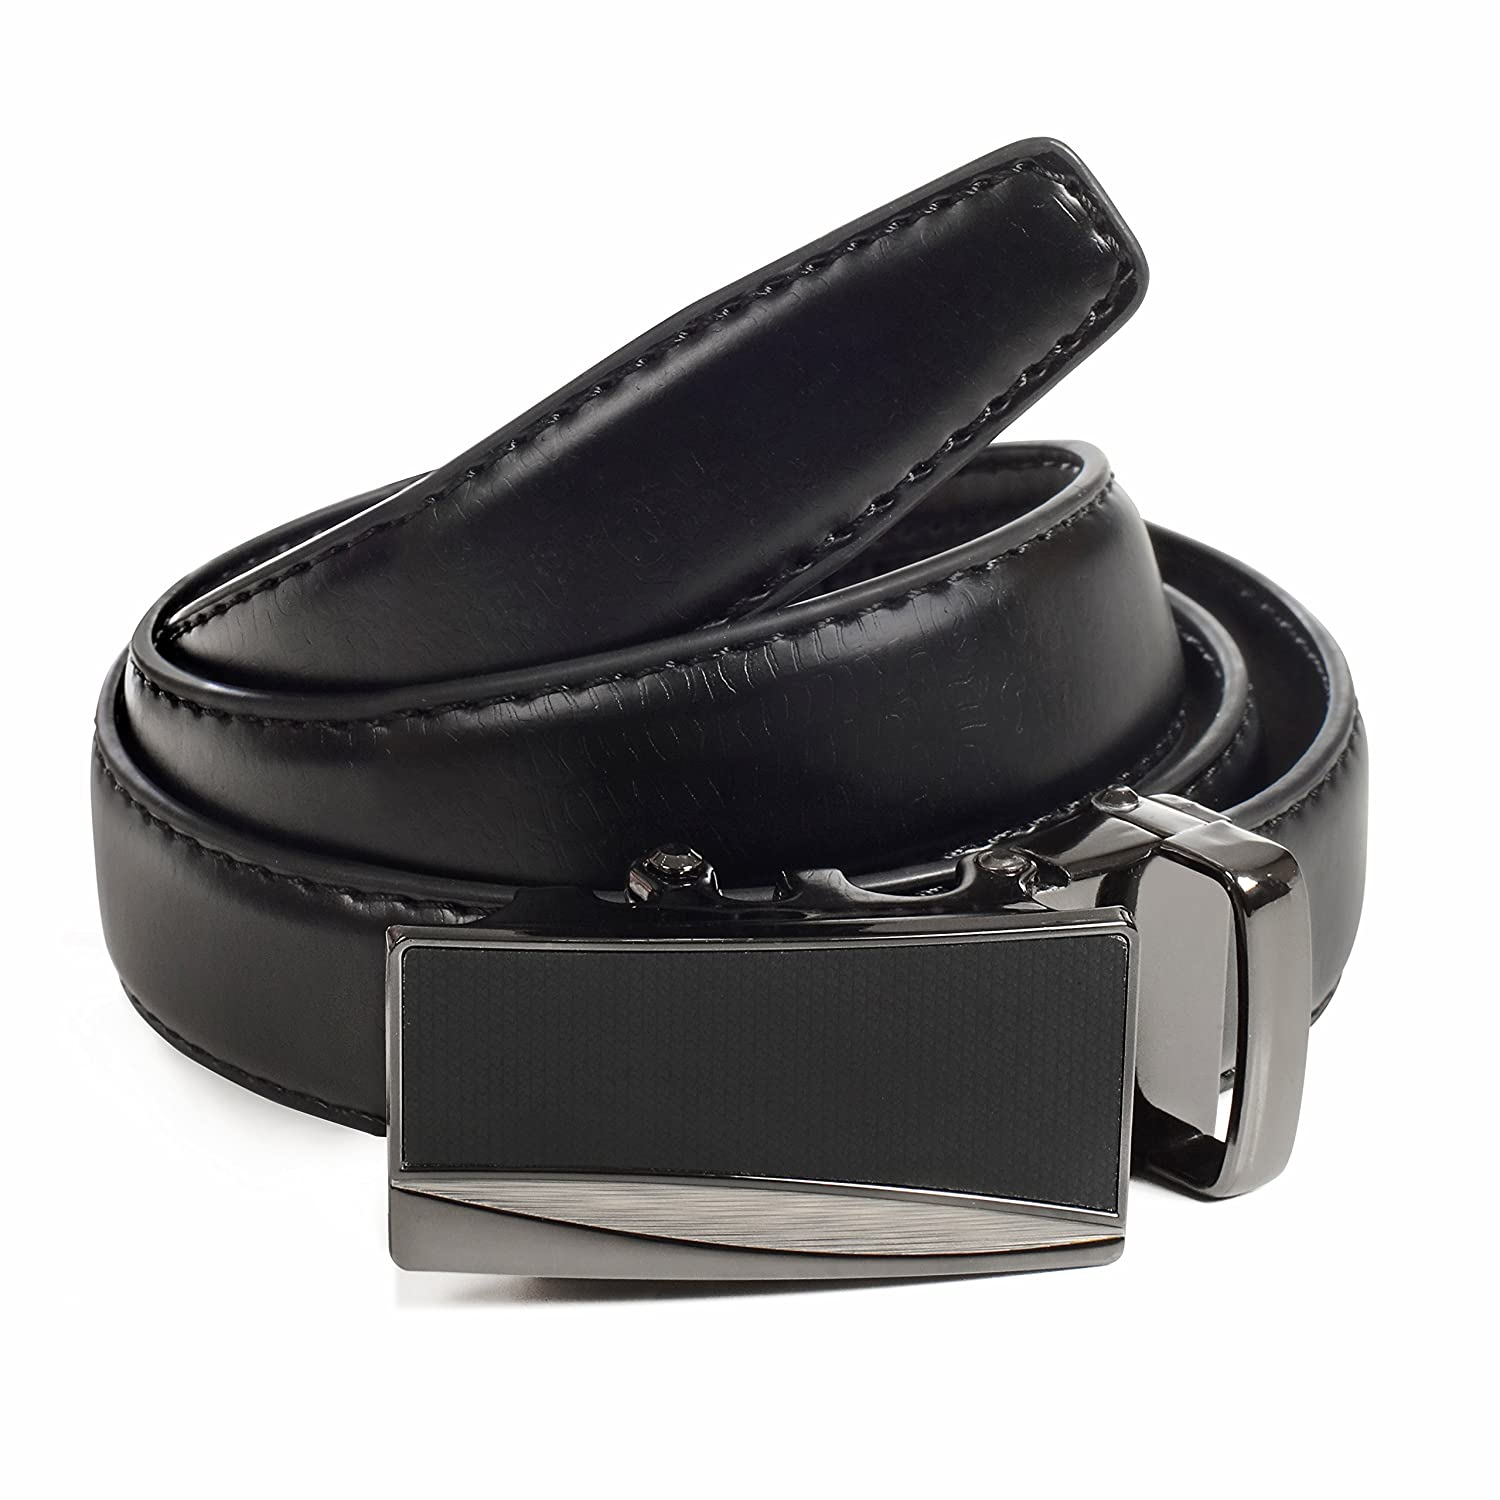 Leather Ratchet Boys Belt, Automatic Buckle, Adjustable Belt by CANDOR AND CLASS